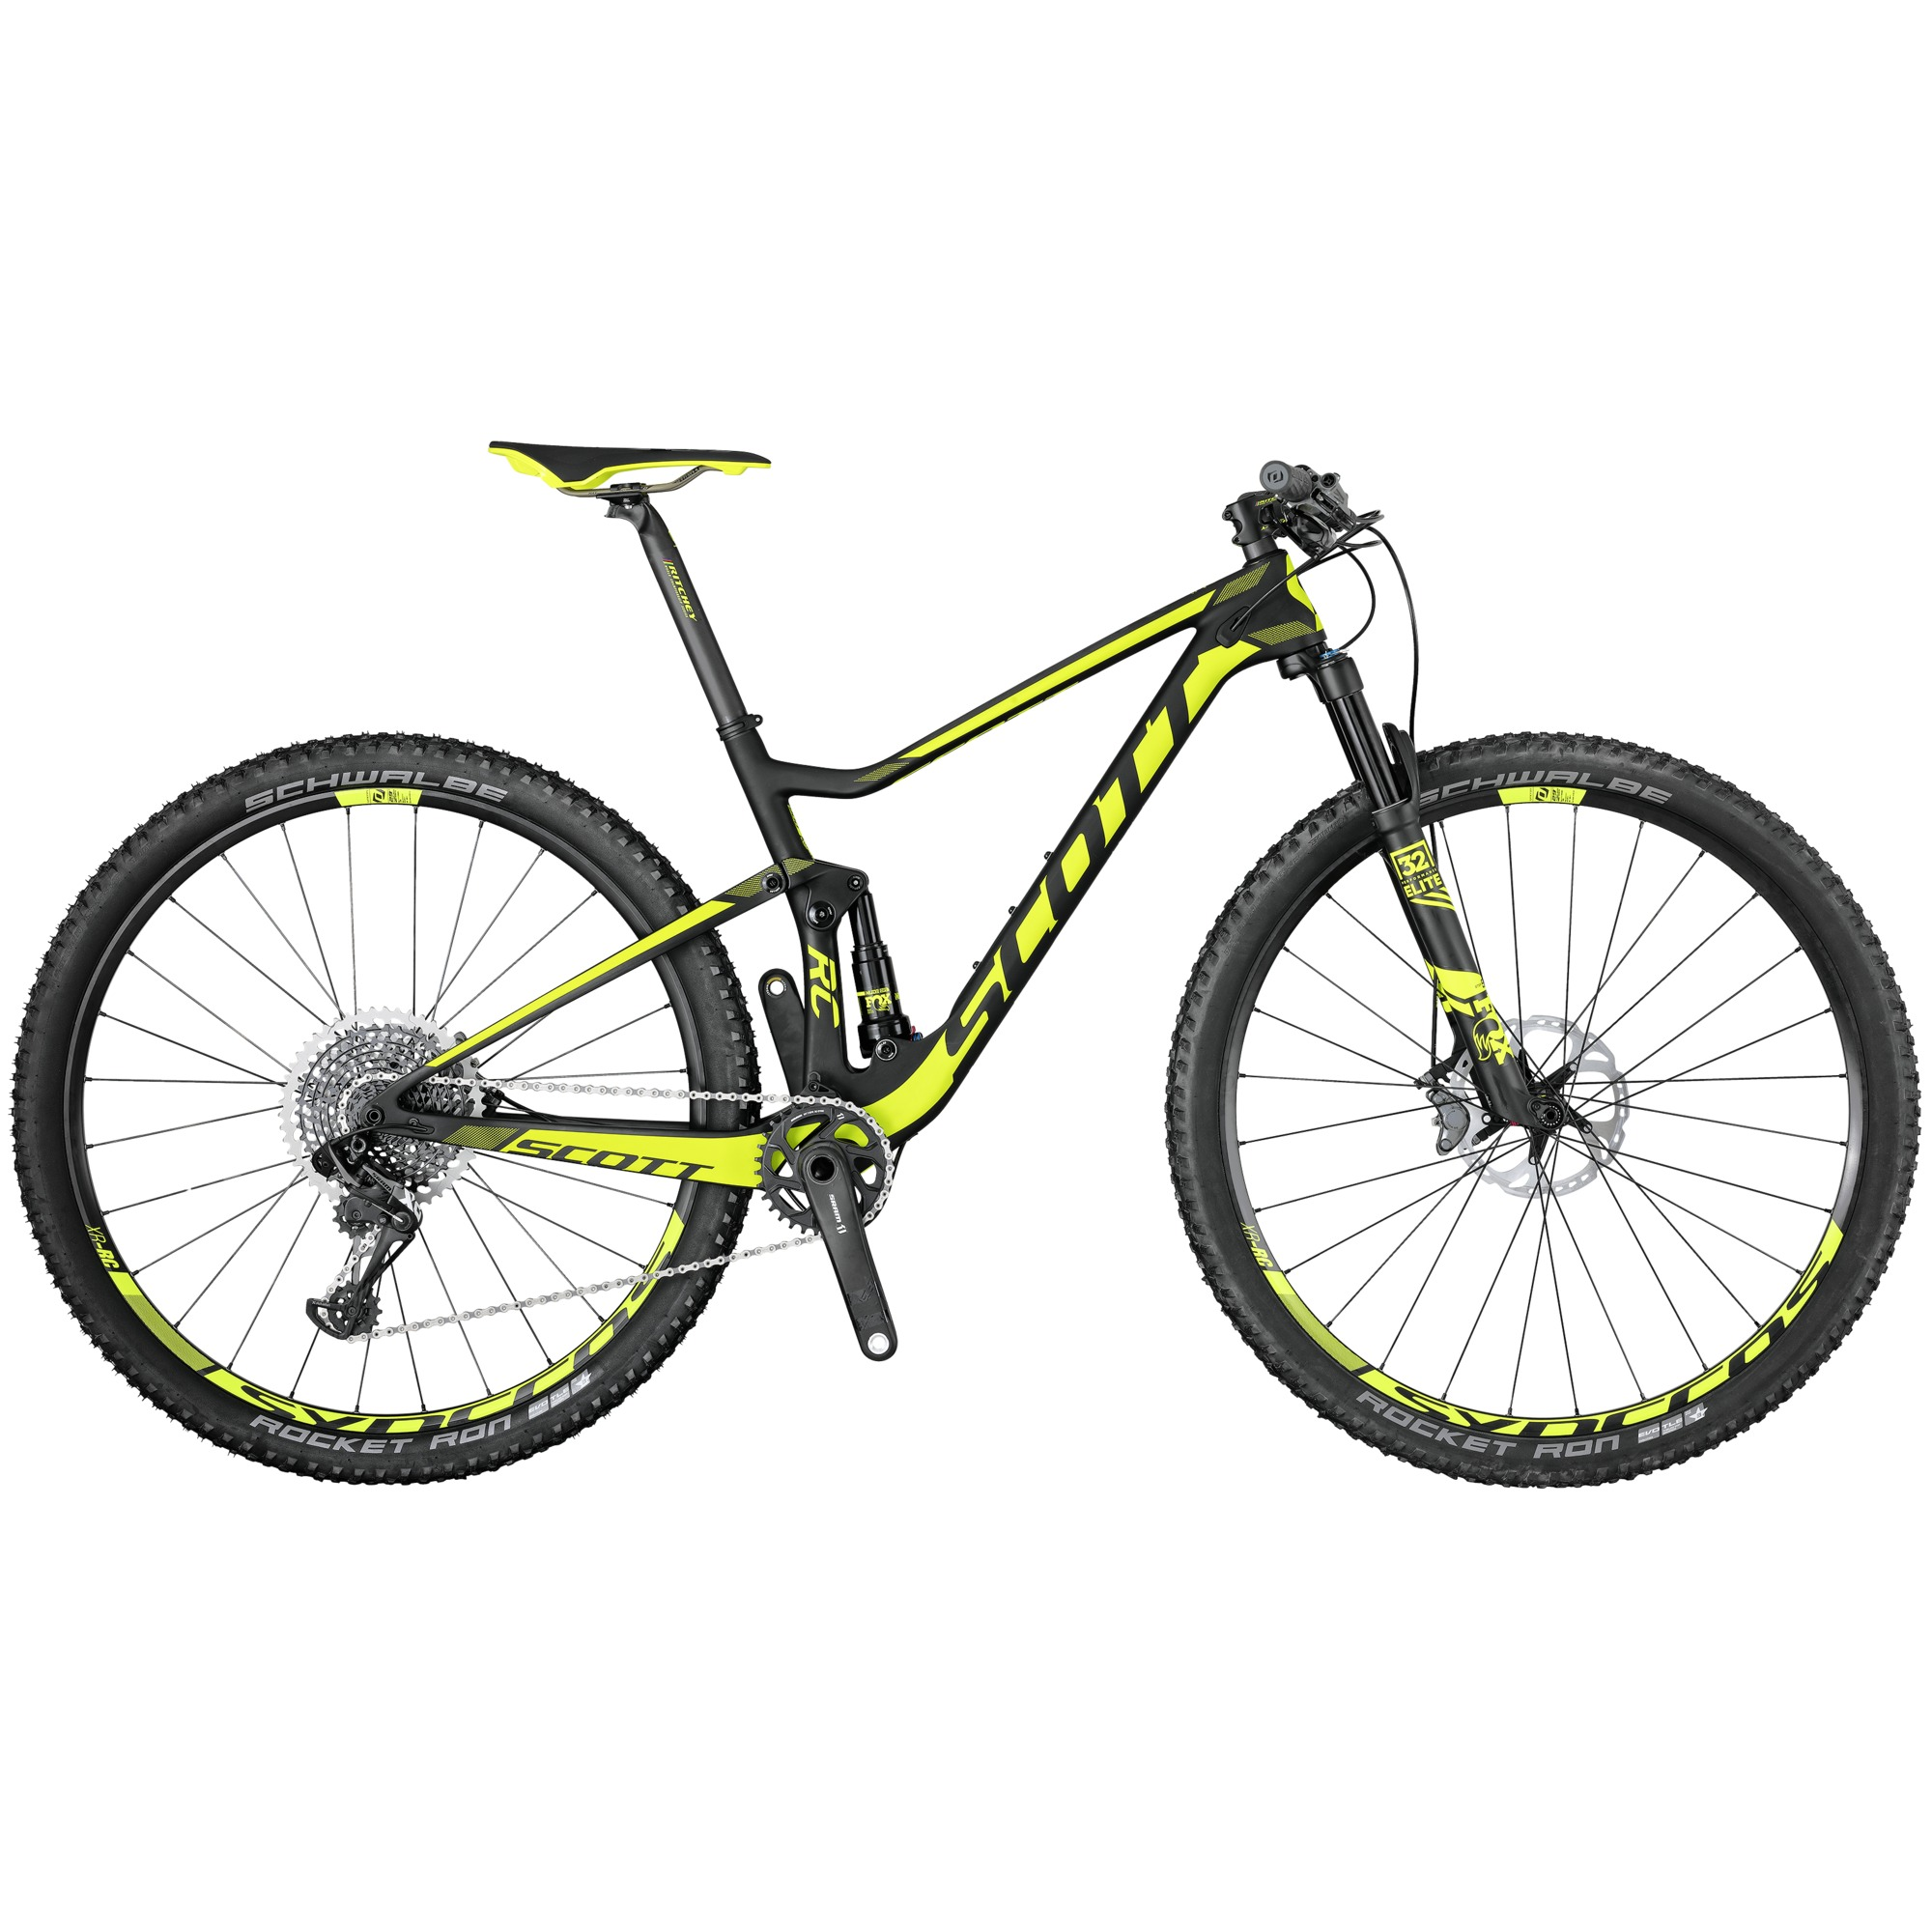 SCOTT Spark RC 700 World Cup Bike